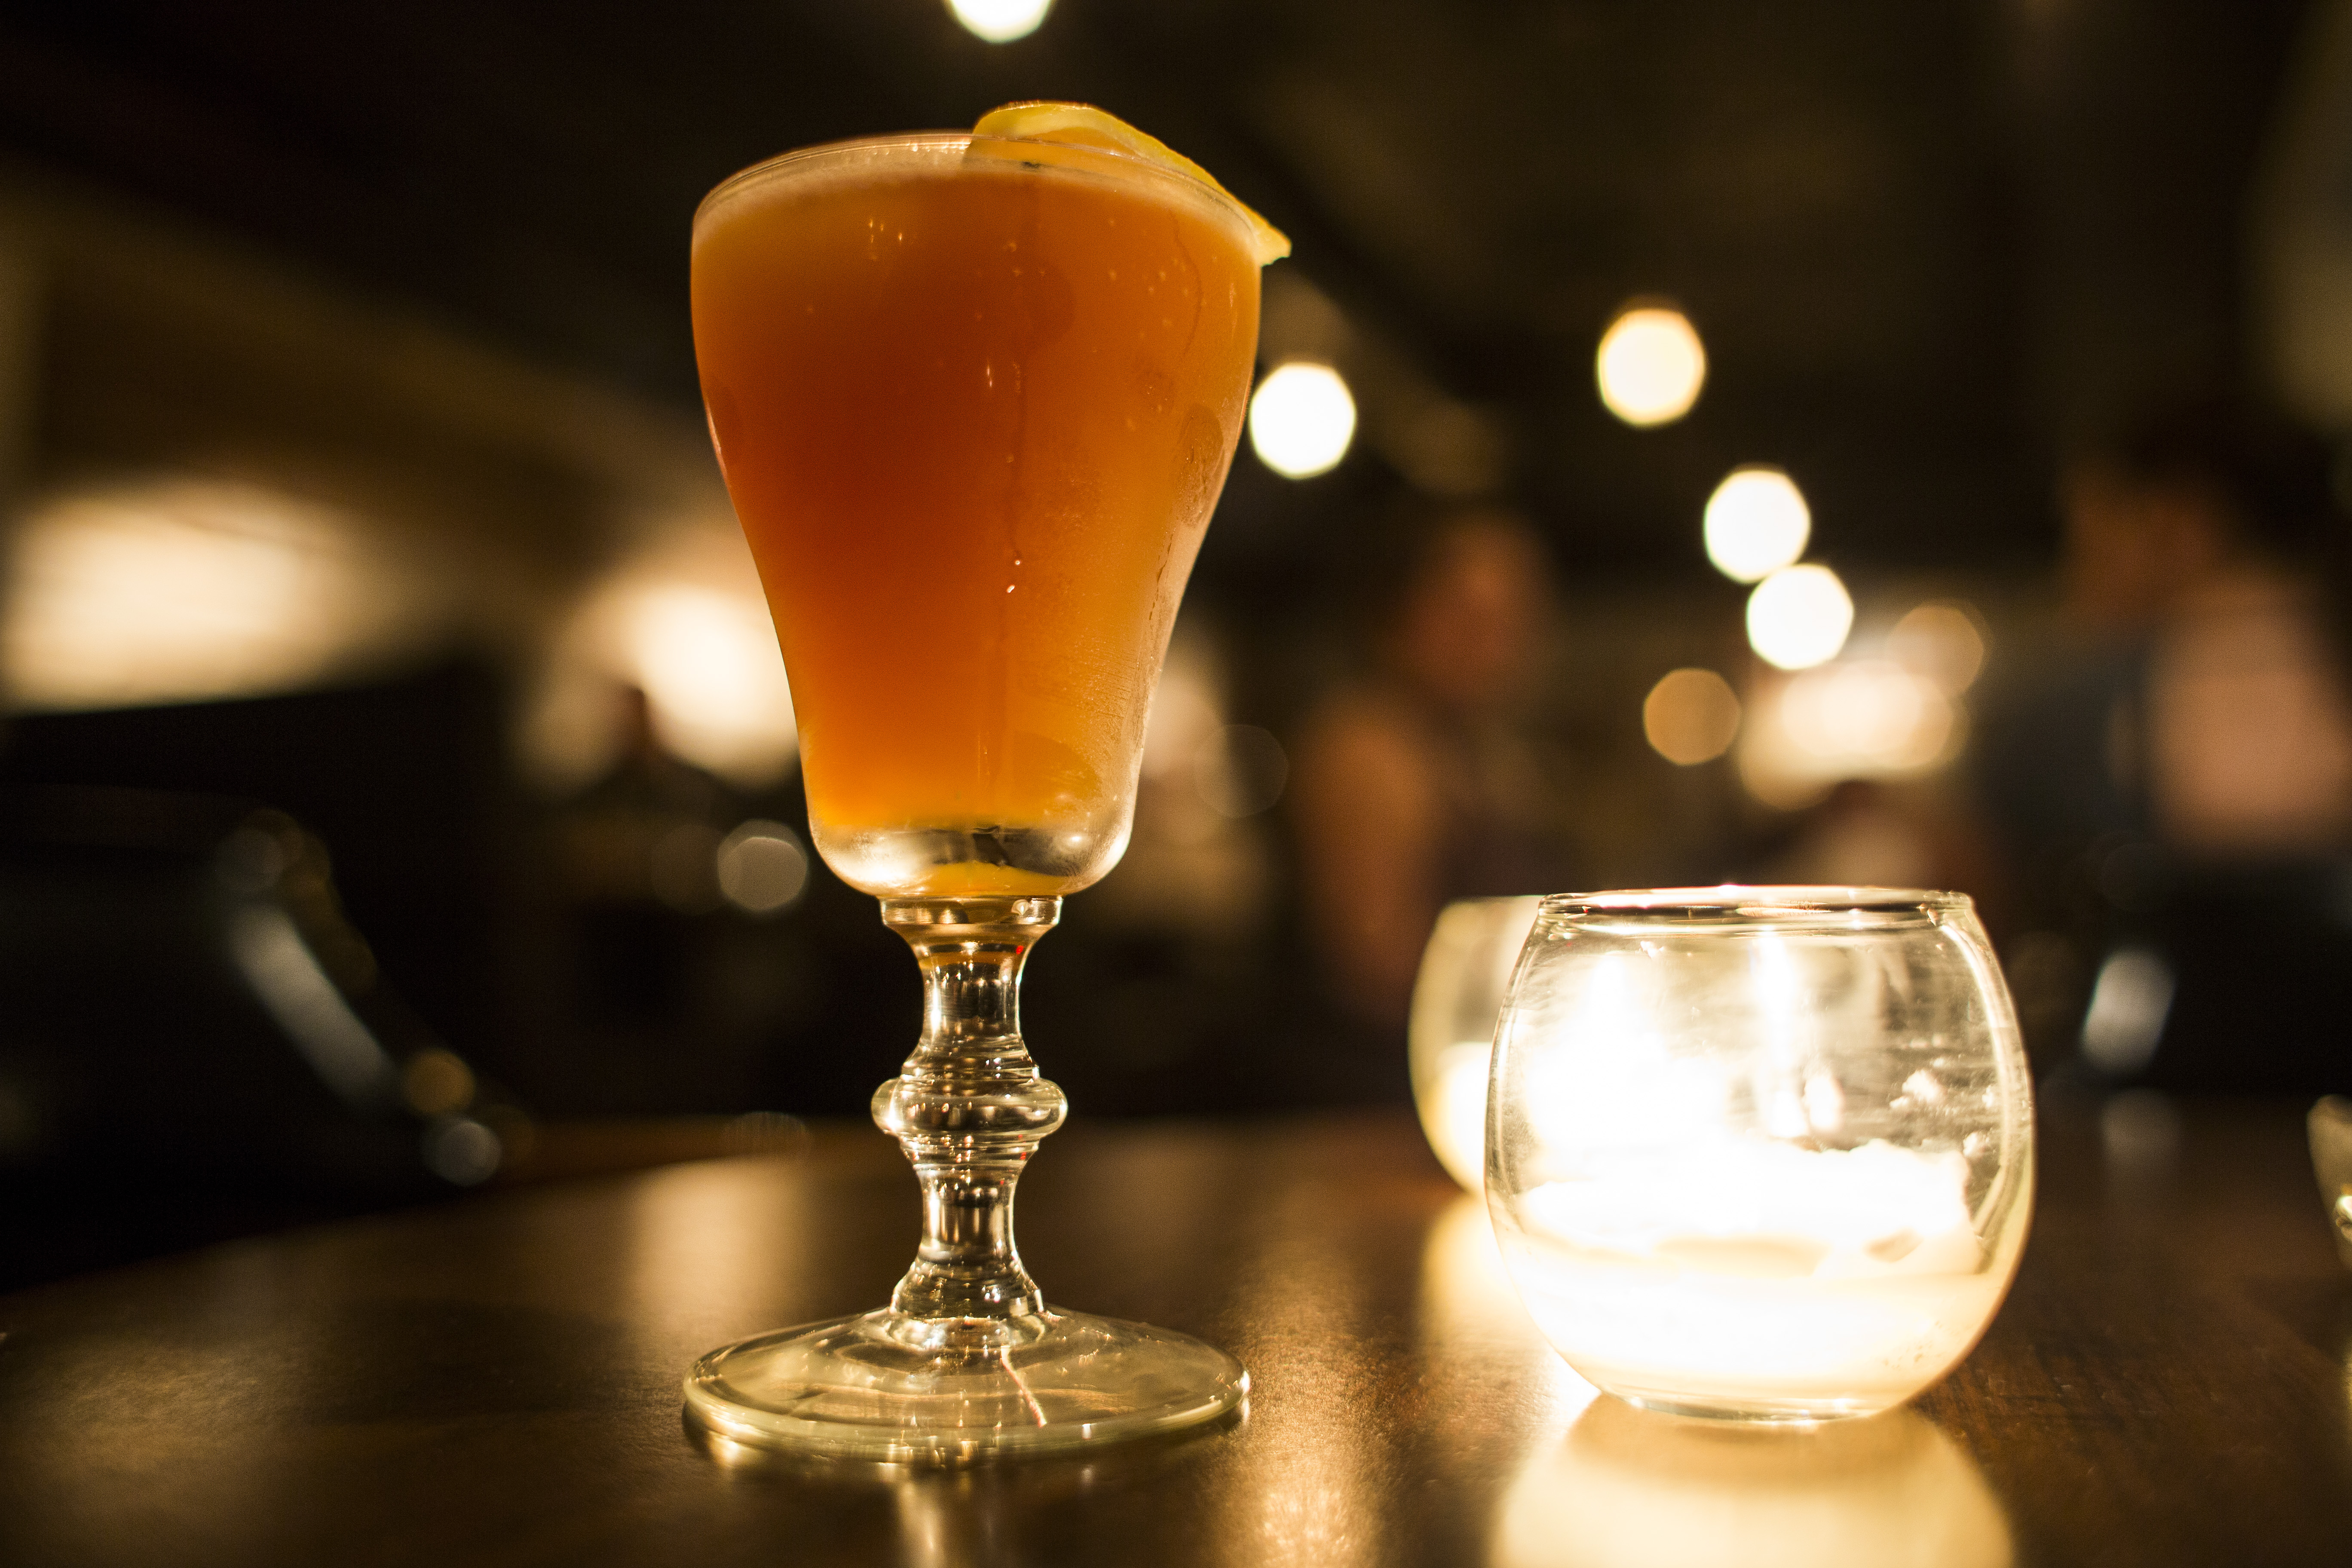 The orange colored cocktail sits next to a glass candle holder on a wooden table in a dimly lit bar.